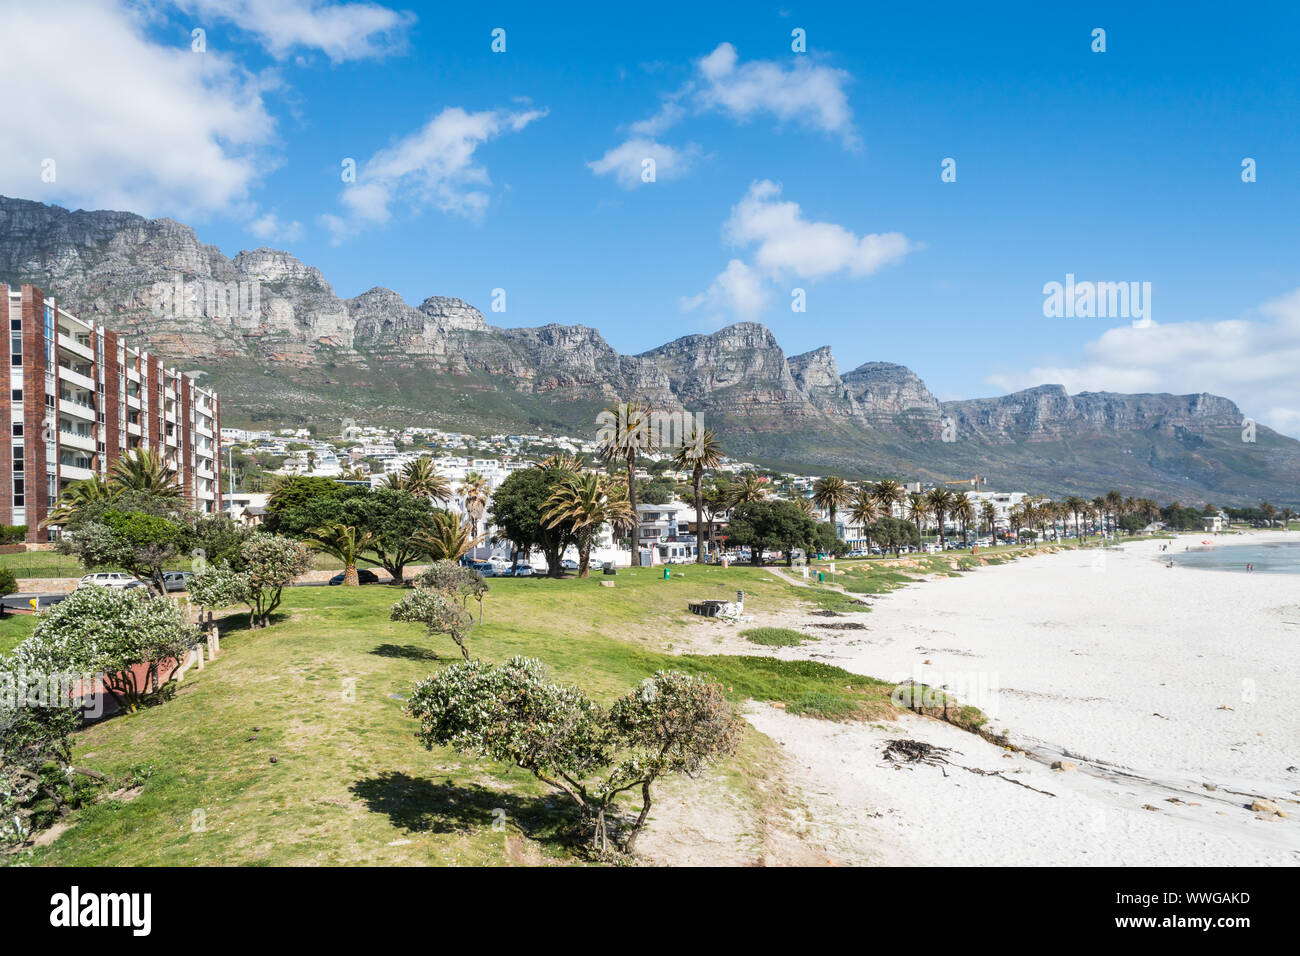 Camps Bay white sandy blue flag beach in Cape Town, South Africa scenic view onto the upmarket suburb with Twelve Apostle mountains in the background Stock Photo